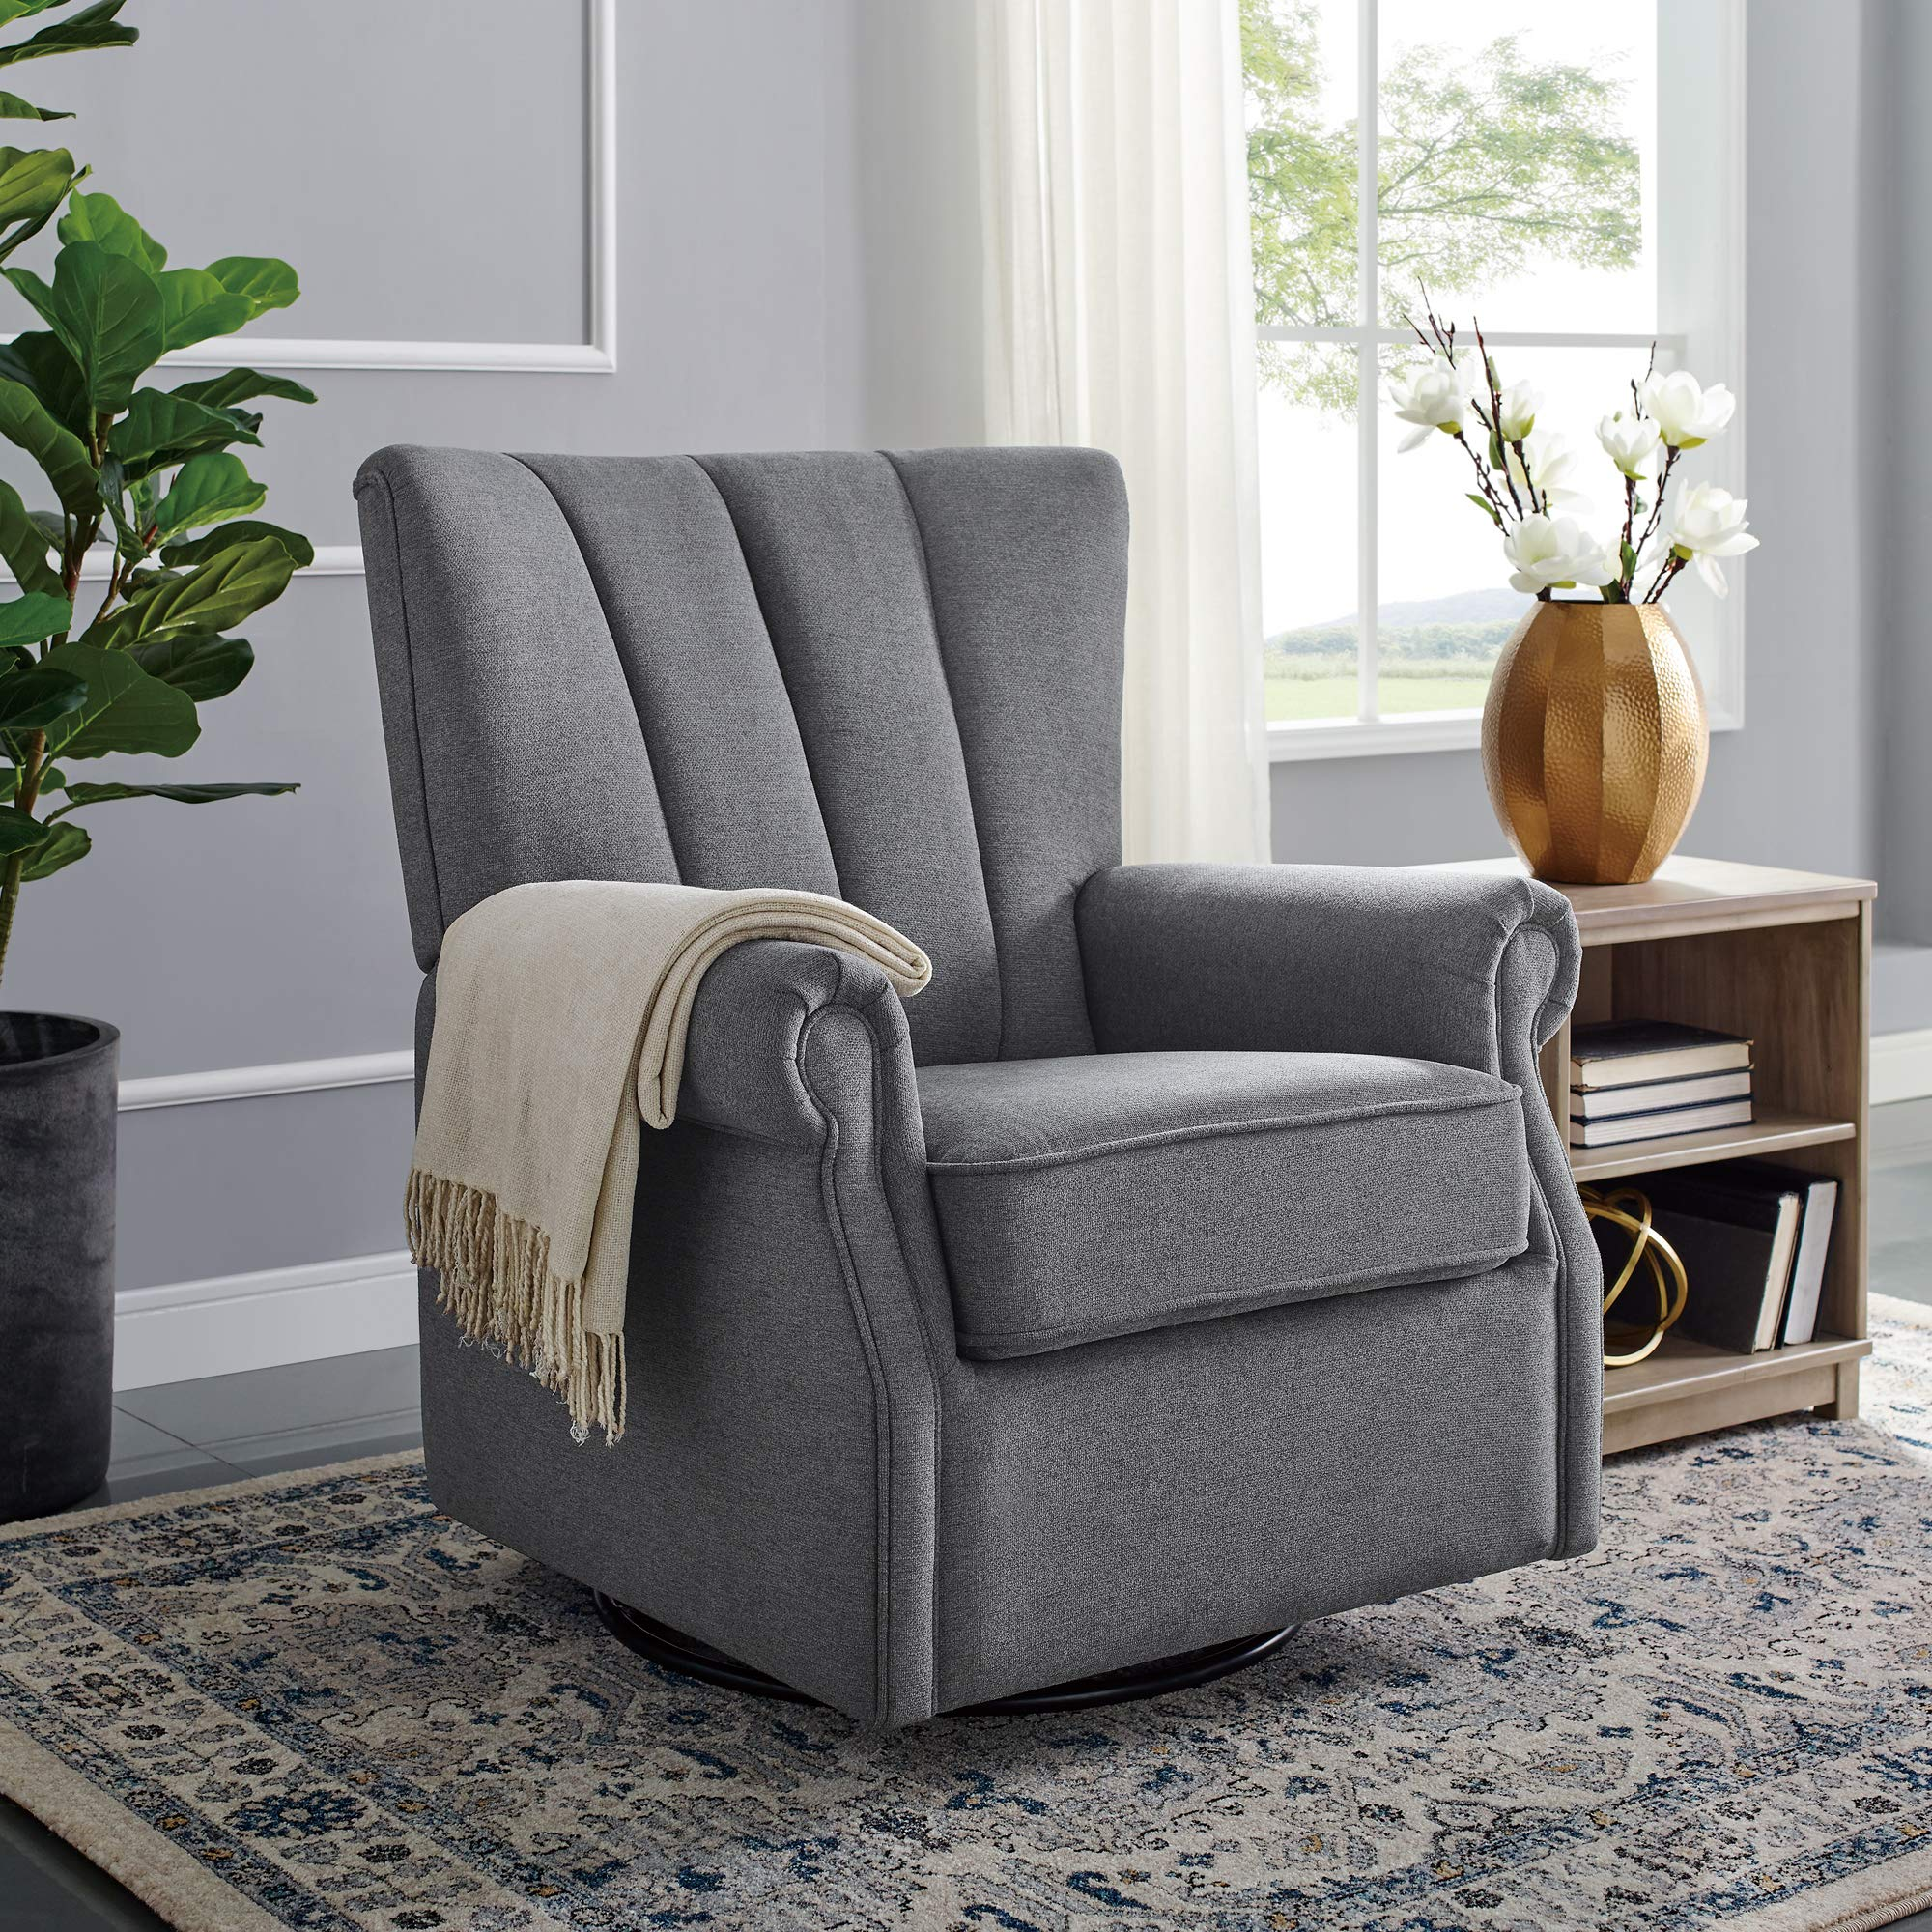 Classic Brands David & John Popstitch Upholstered Glider Swivel Rocker Chair, Grey by Classic Brands